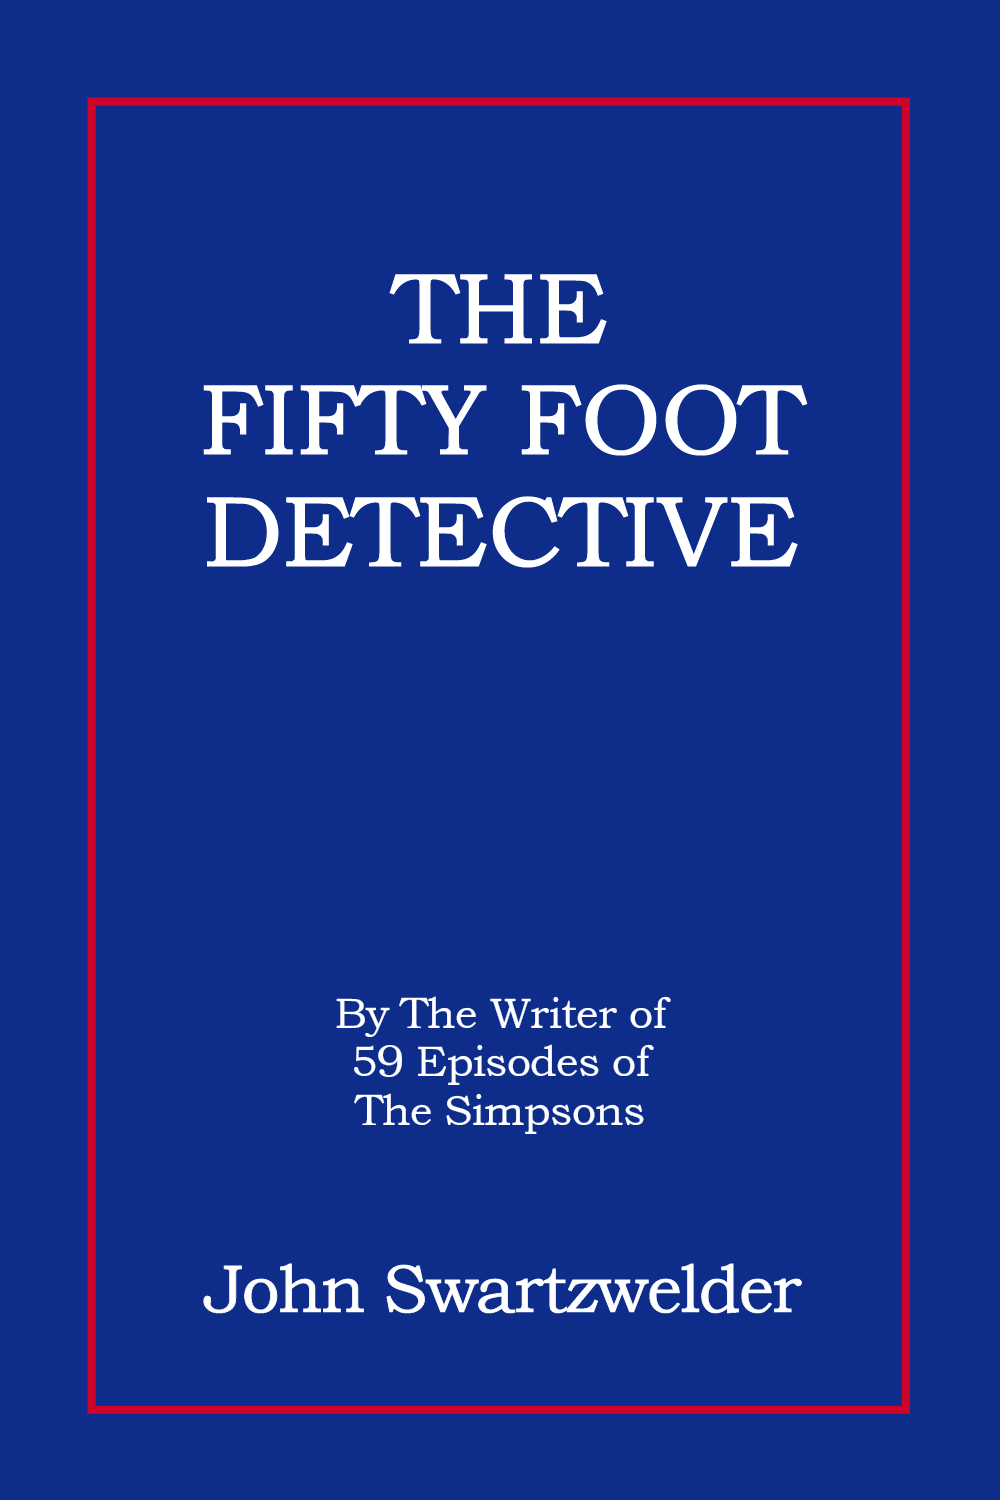 The Fifty Foot Detective by John Swartzwelder